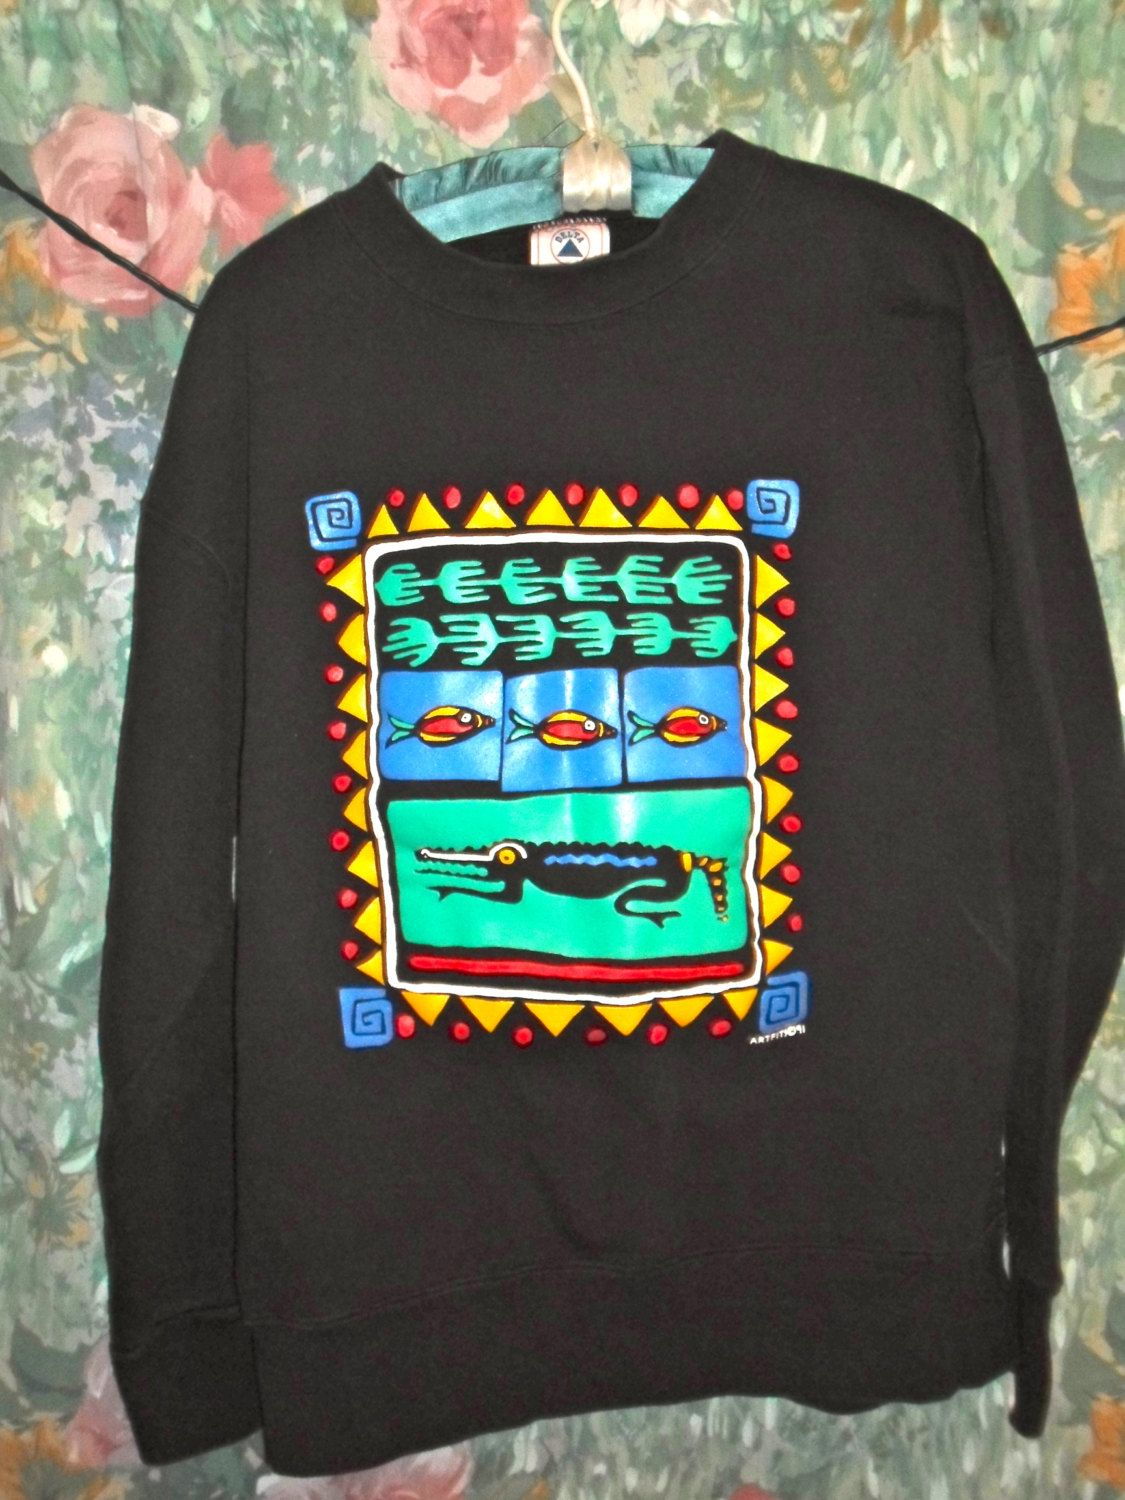 90s Tribal African Western Print With Bright Colors Crewneck Sweatshirt 25 00 Via Etsy Clothes Tribal African Crew Neck Sweatshirt [ 1500 x 1125 Pixel ]